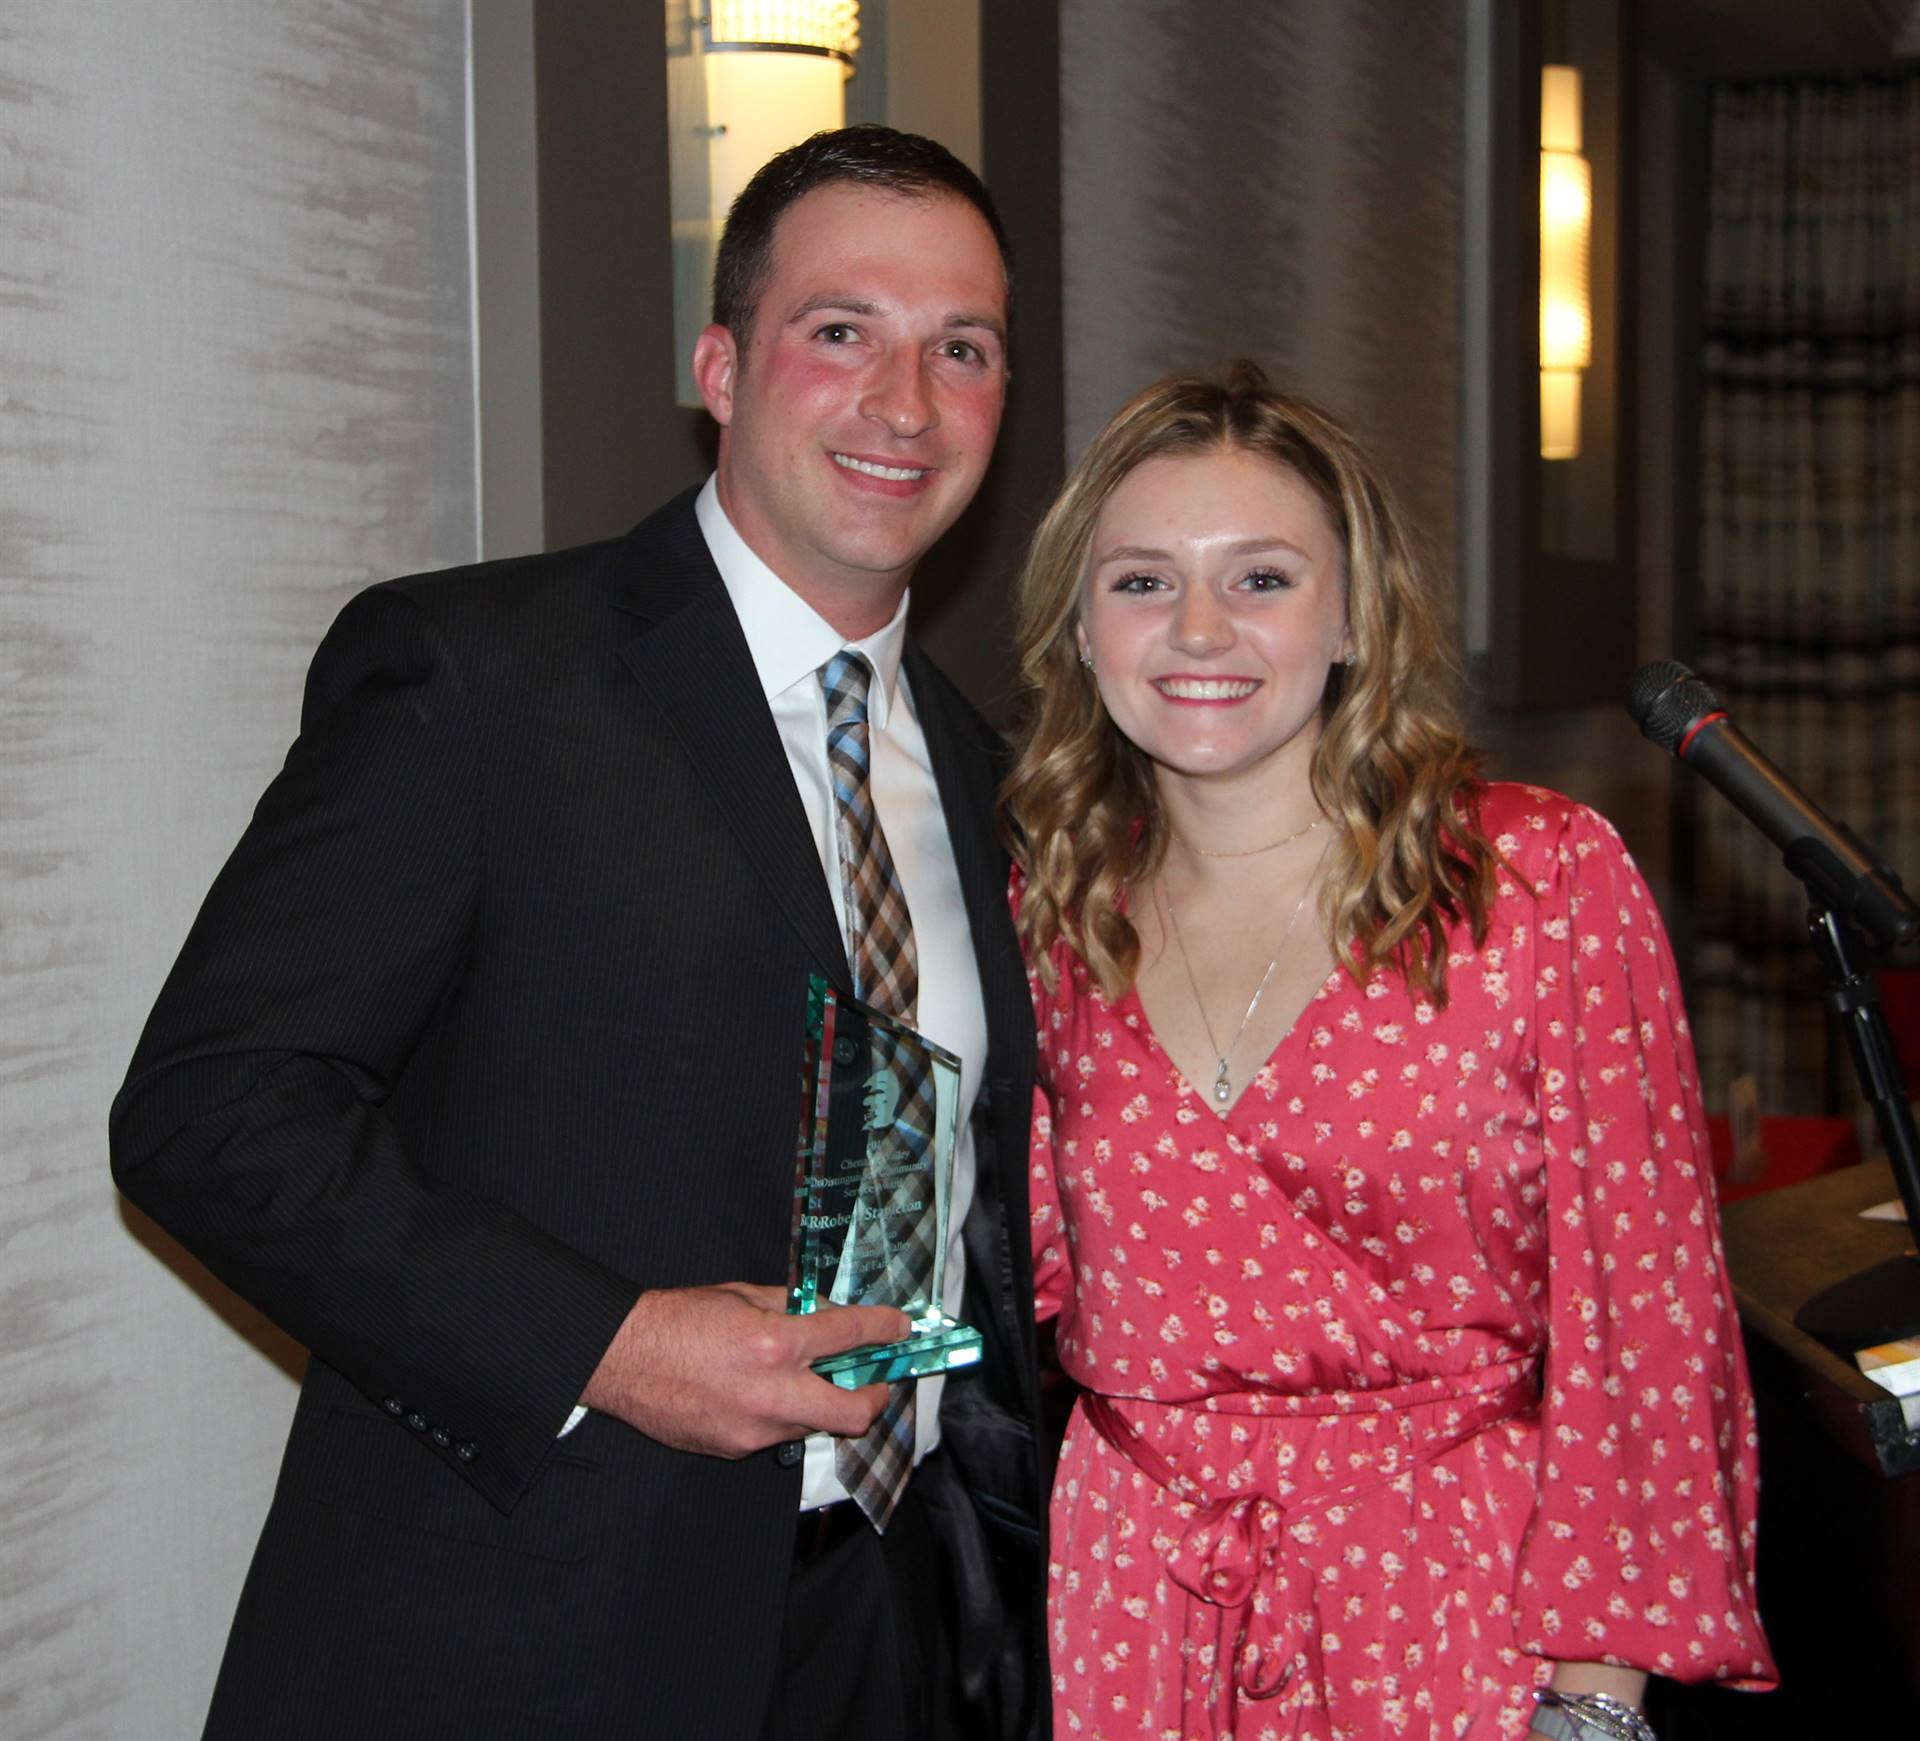 honoree and student